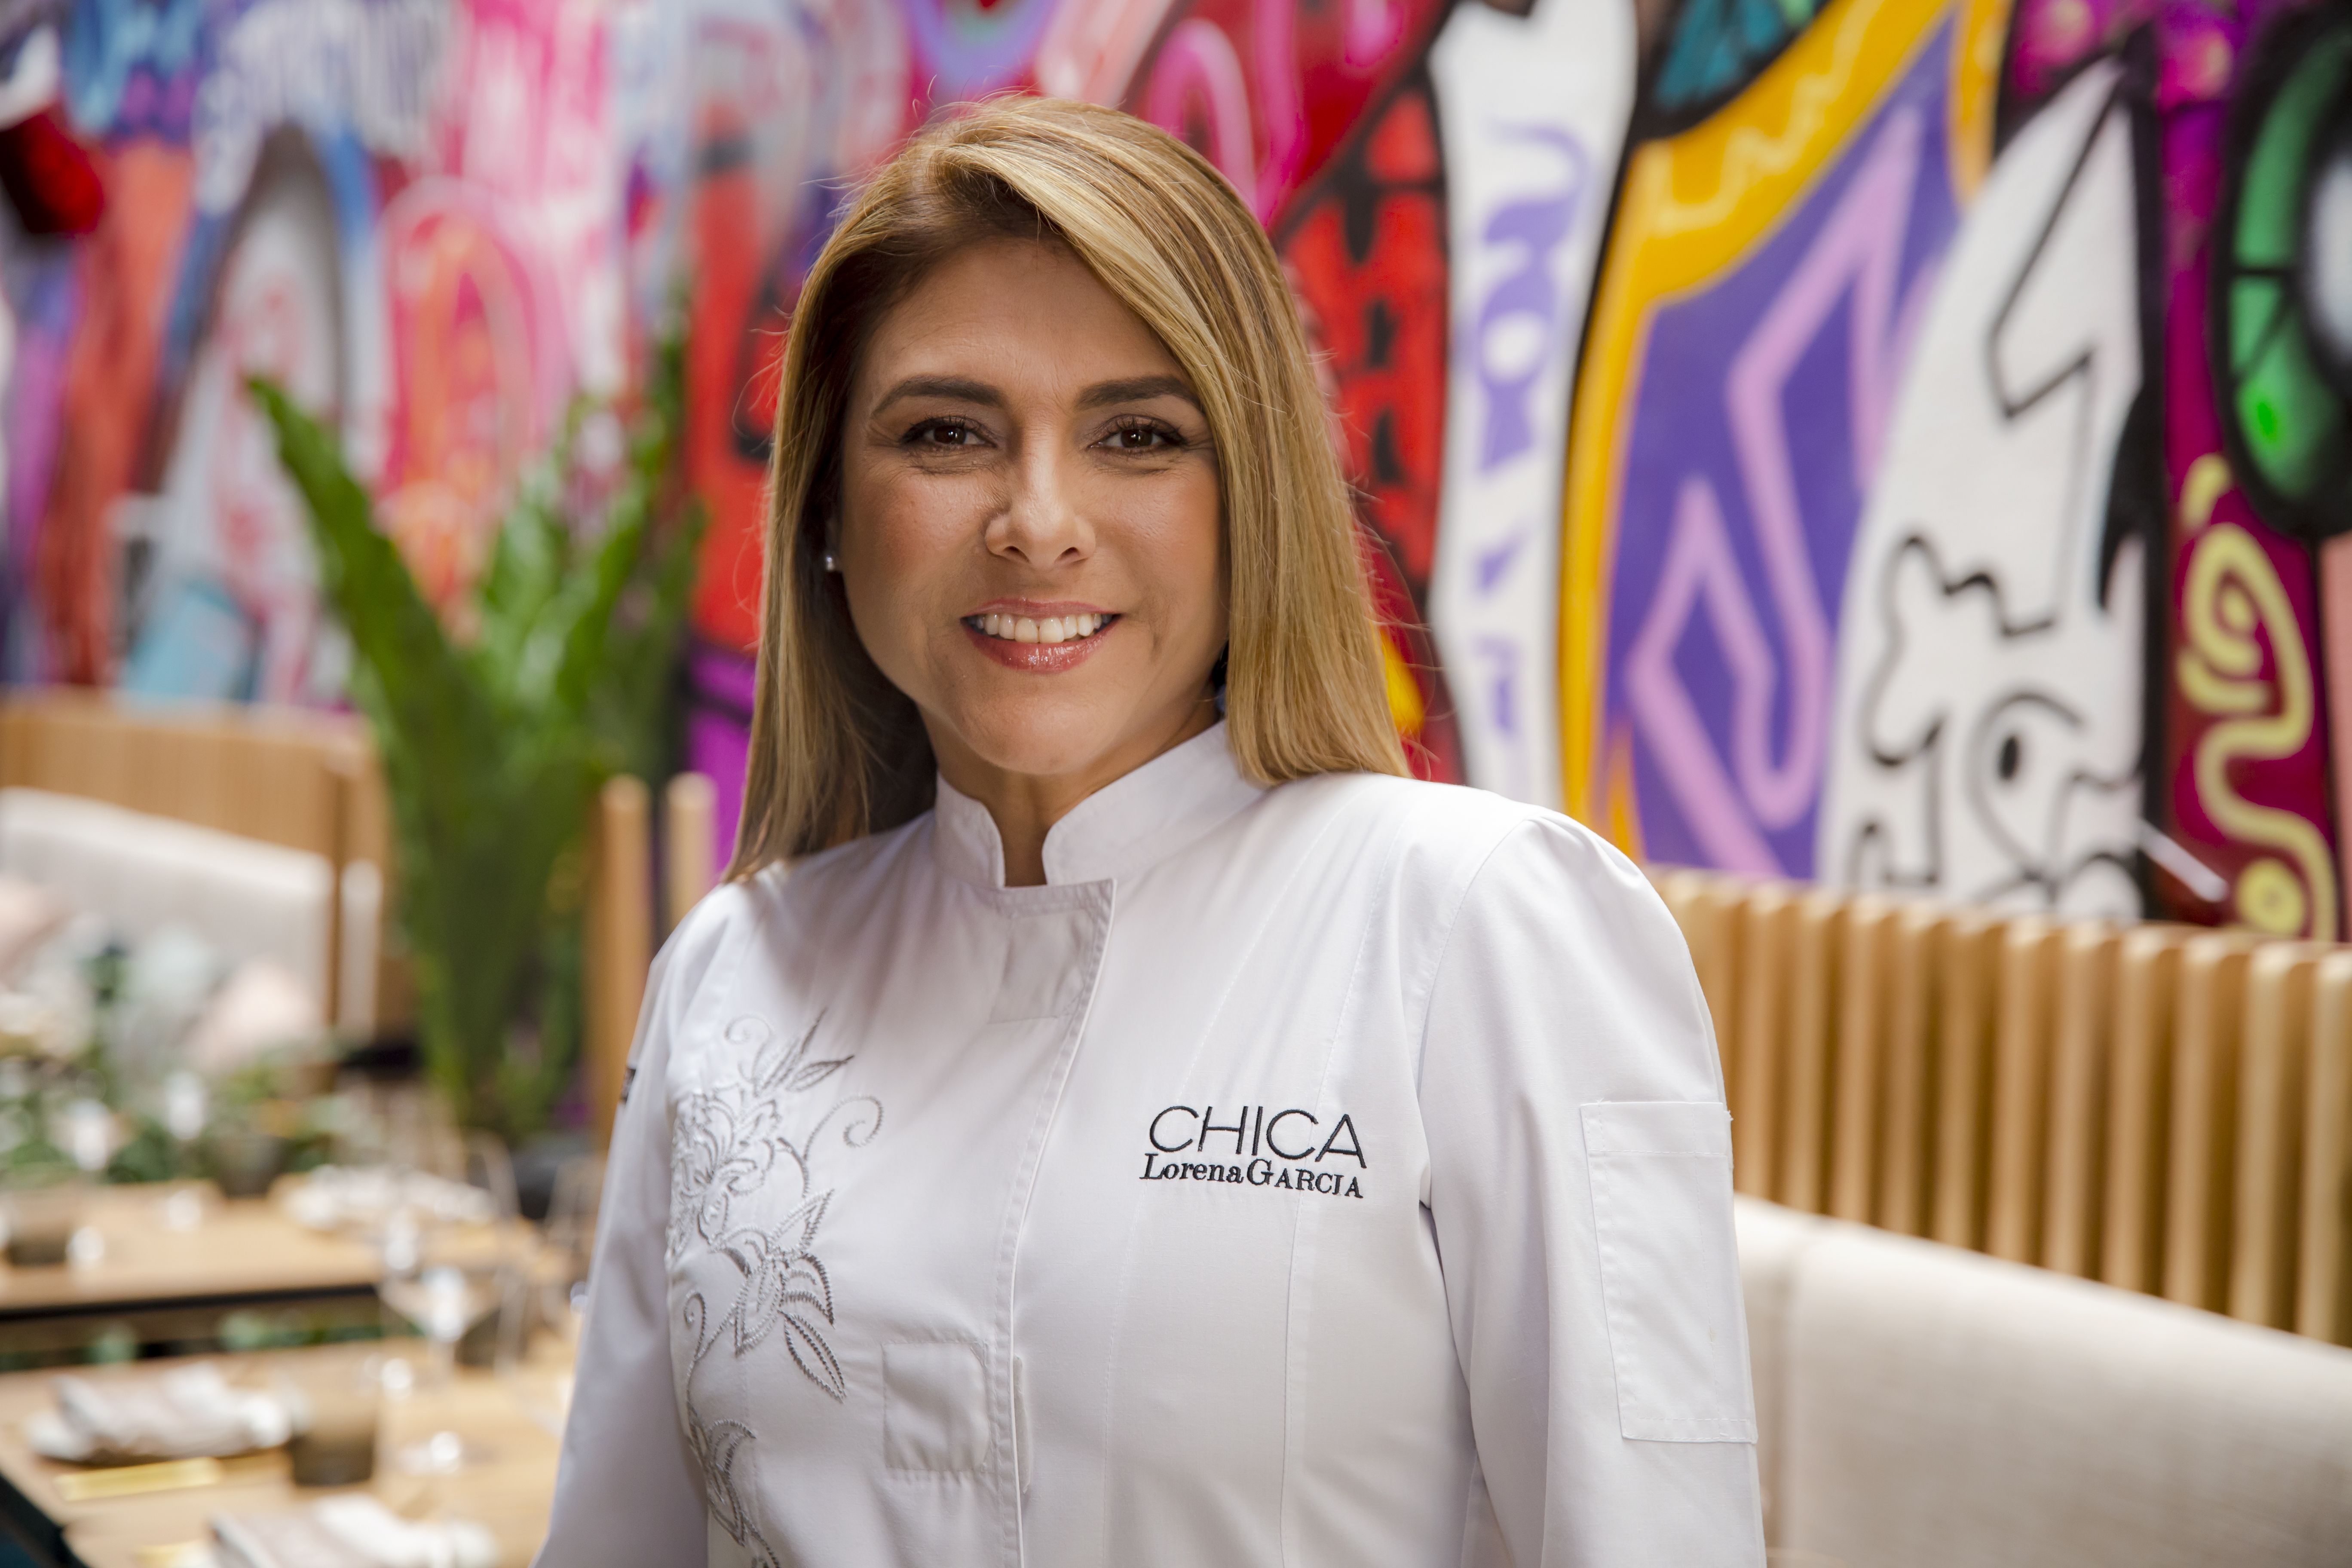 A woman wears a white chefs coat